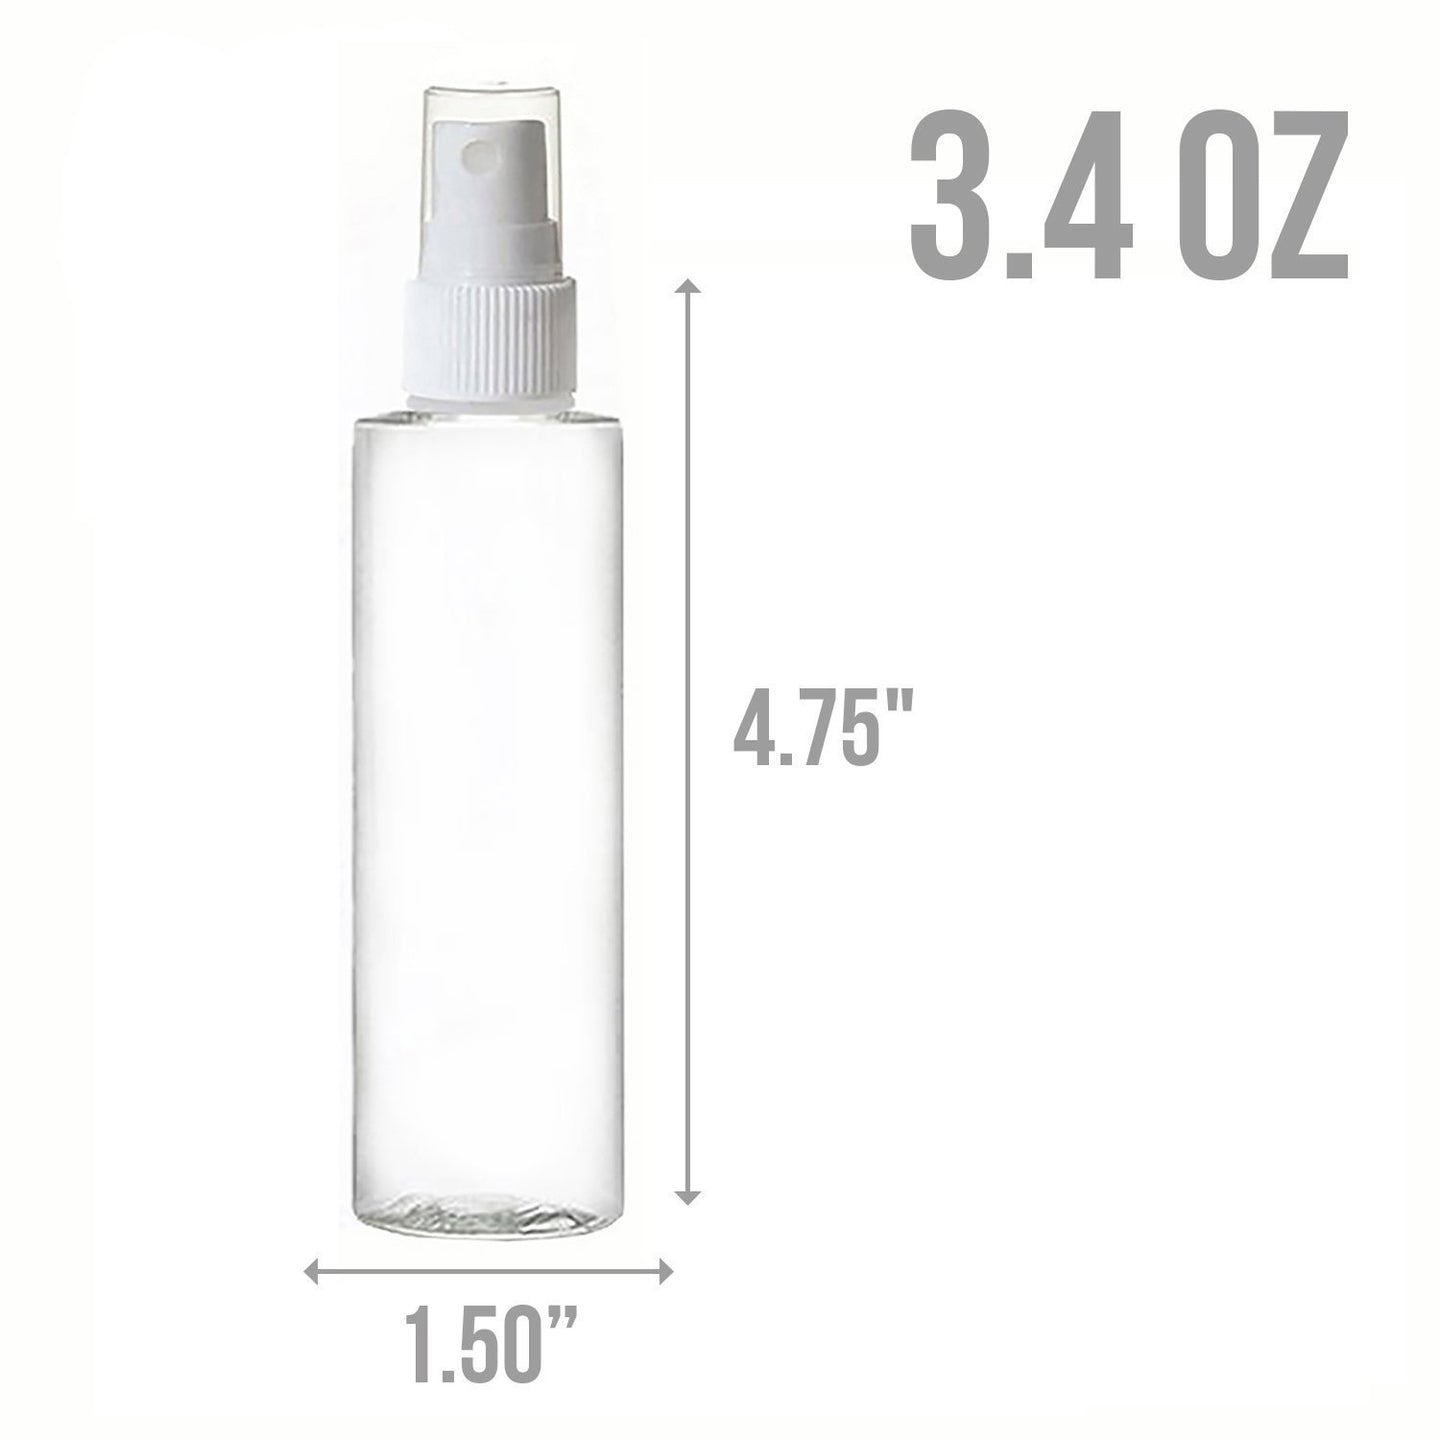 Misting Plants Yardwe 3 Pcs 500ml Plastic Spray Bottle Empty Fine Mist Spray Bottle Refillable Bottle Water Sprayer for Essential Oils Aromatherapy Cleaning Products